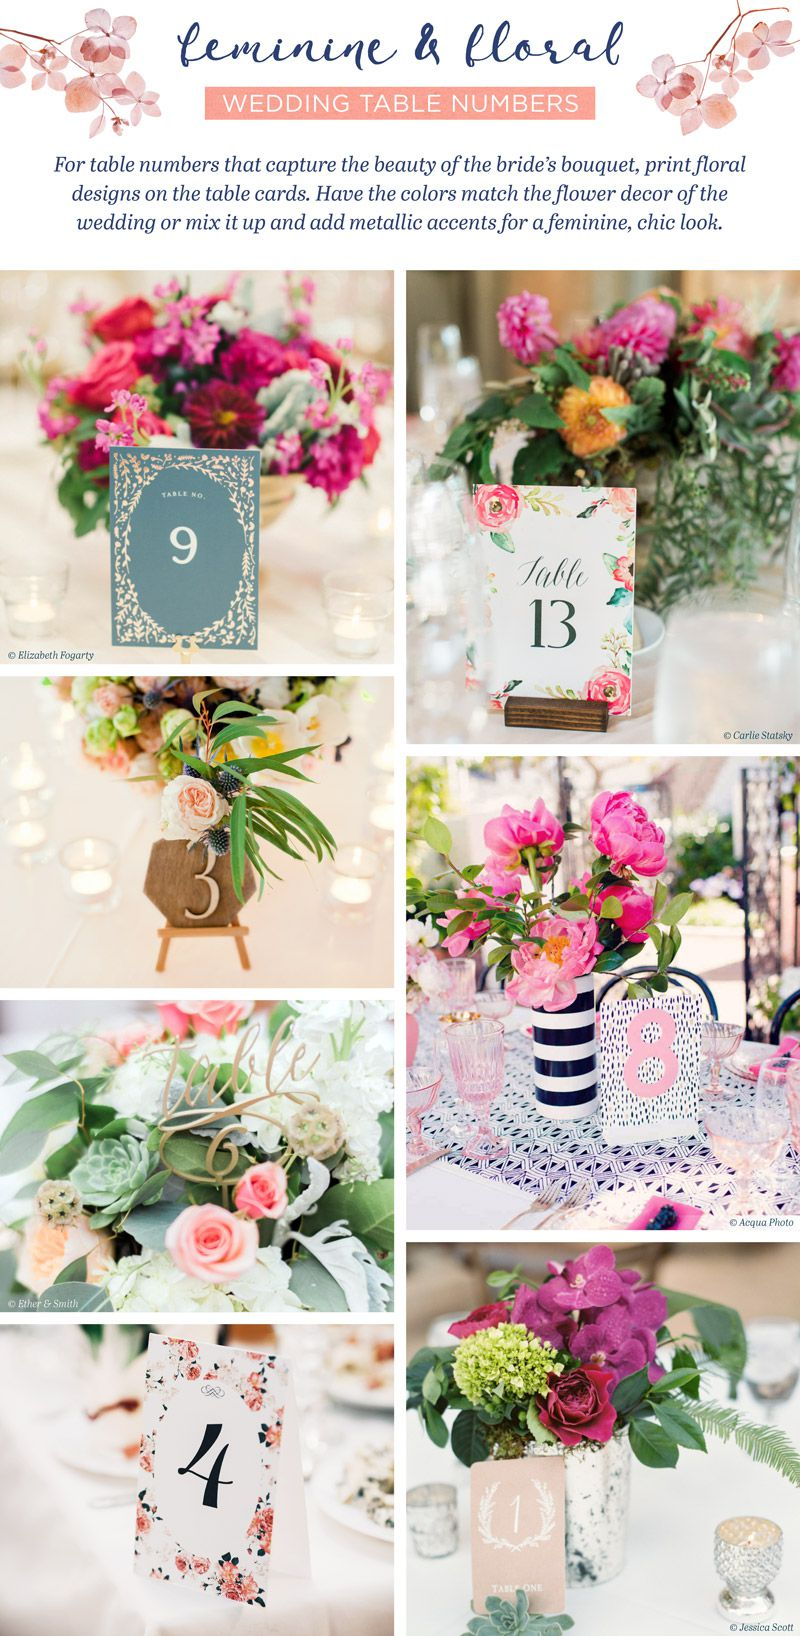 28 wedding table number ideas for your special day rustic wedding chic rustic wedding table numbers izmirmasajfo Gallery